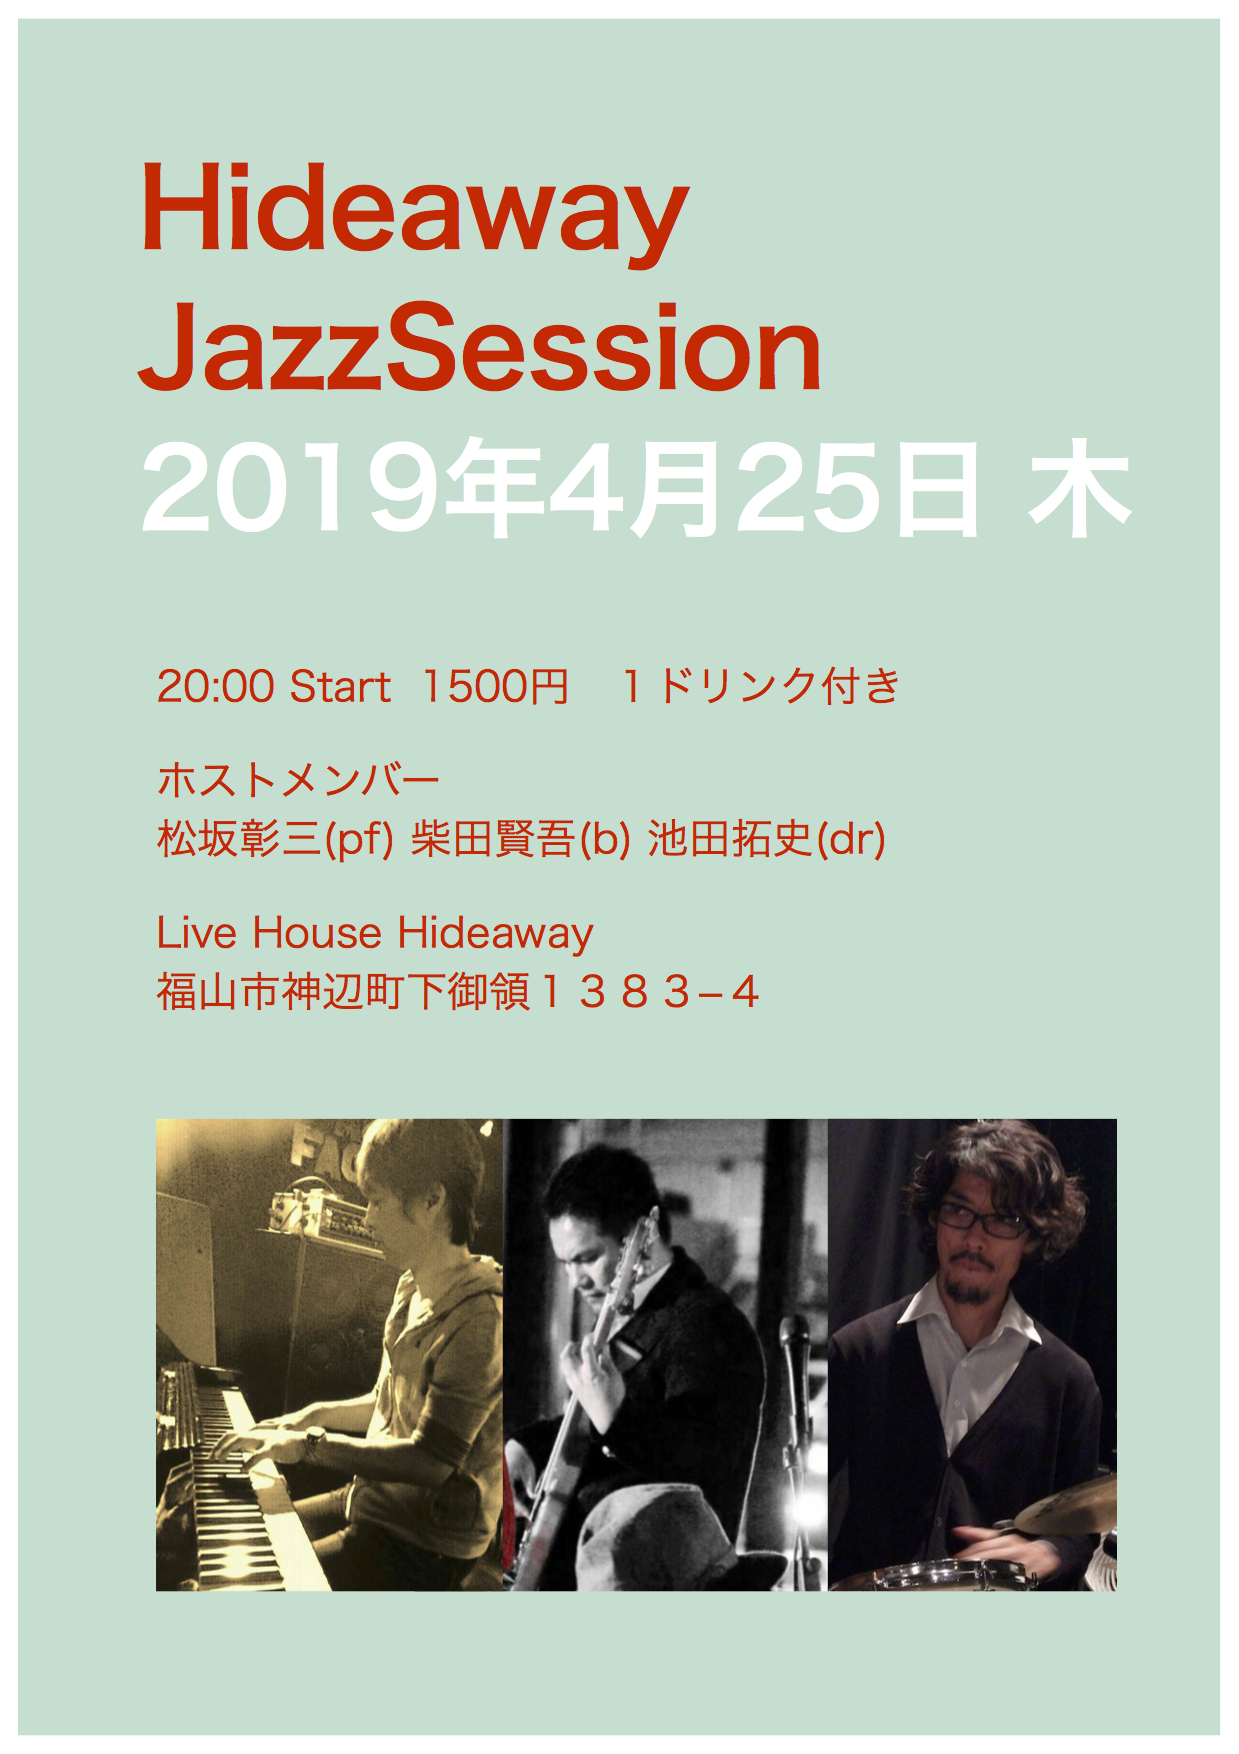 newsession20190425.jpg